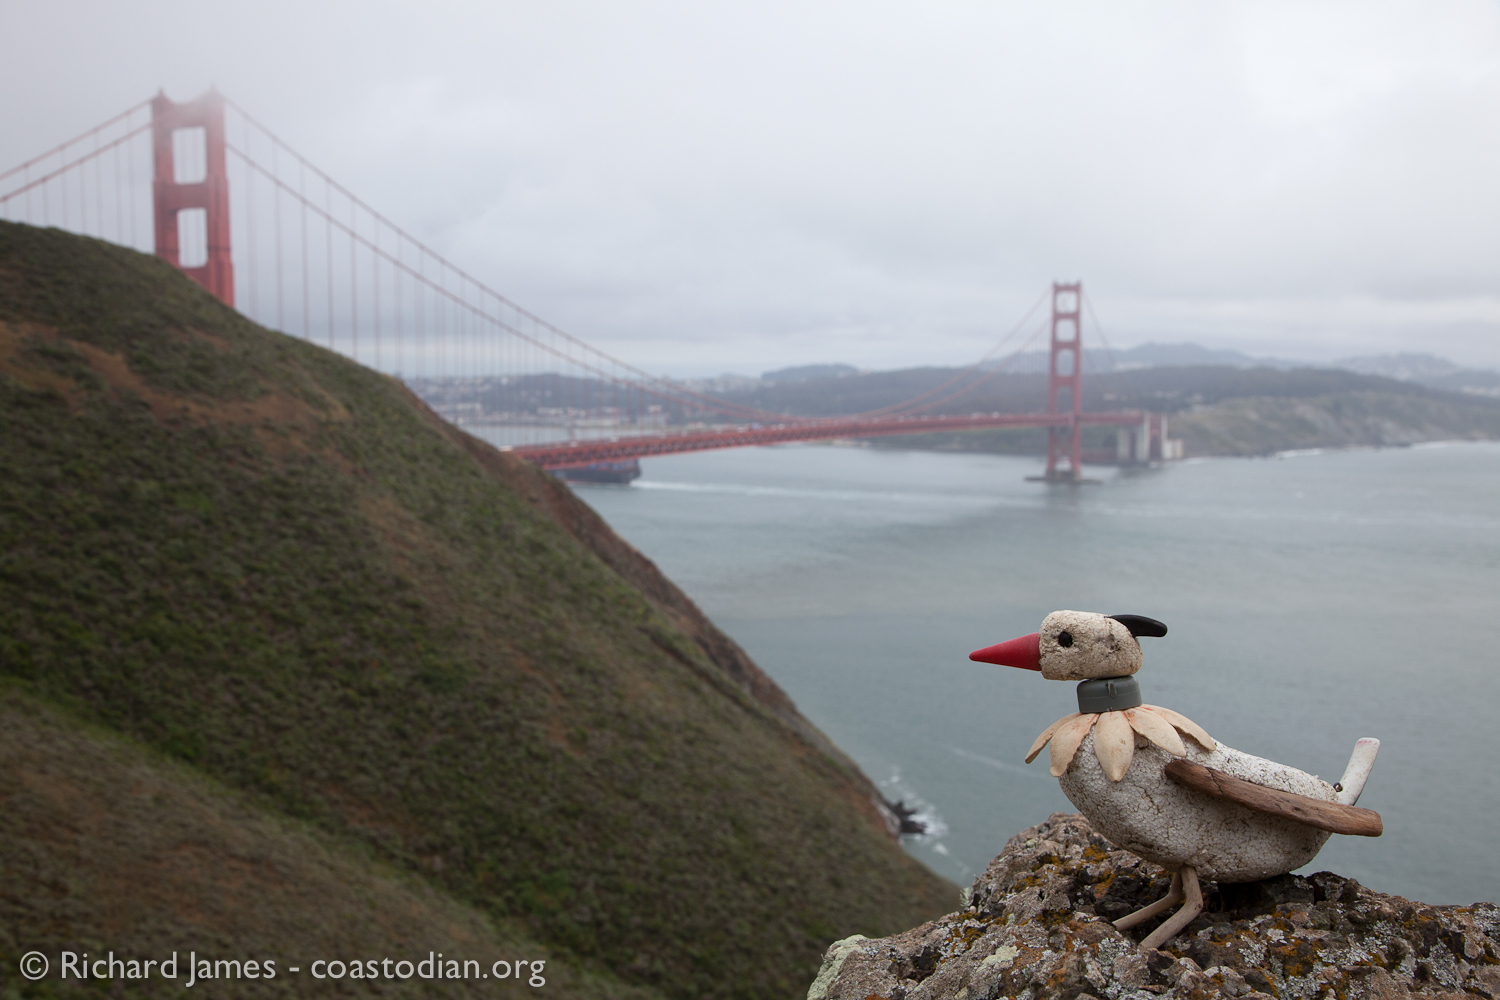 What is this? A rare sighting of the Heisenberg's Hammerkopf near The Golden Gate Bridge! Will we see more of this rare vagrant? ©Richard James - coastodian.org